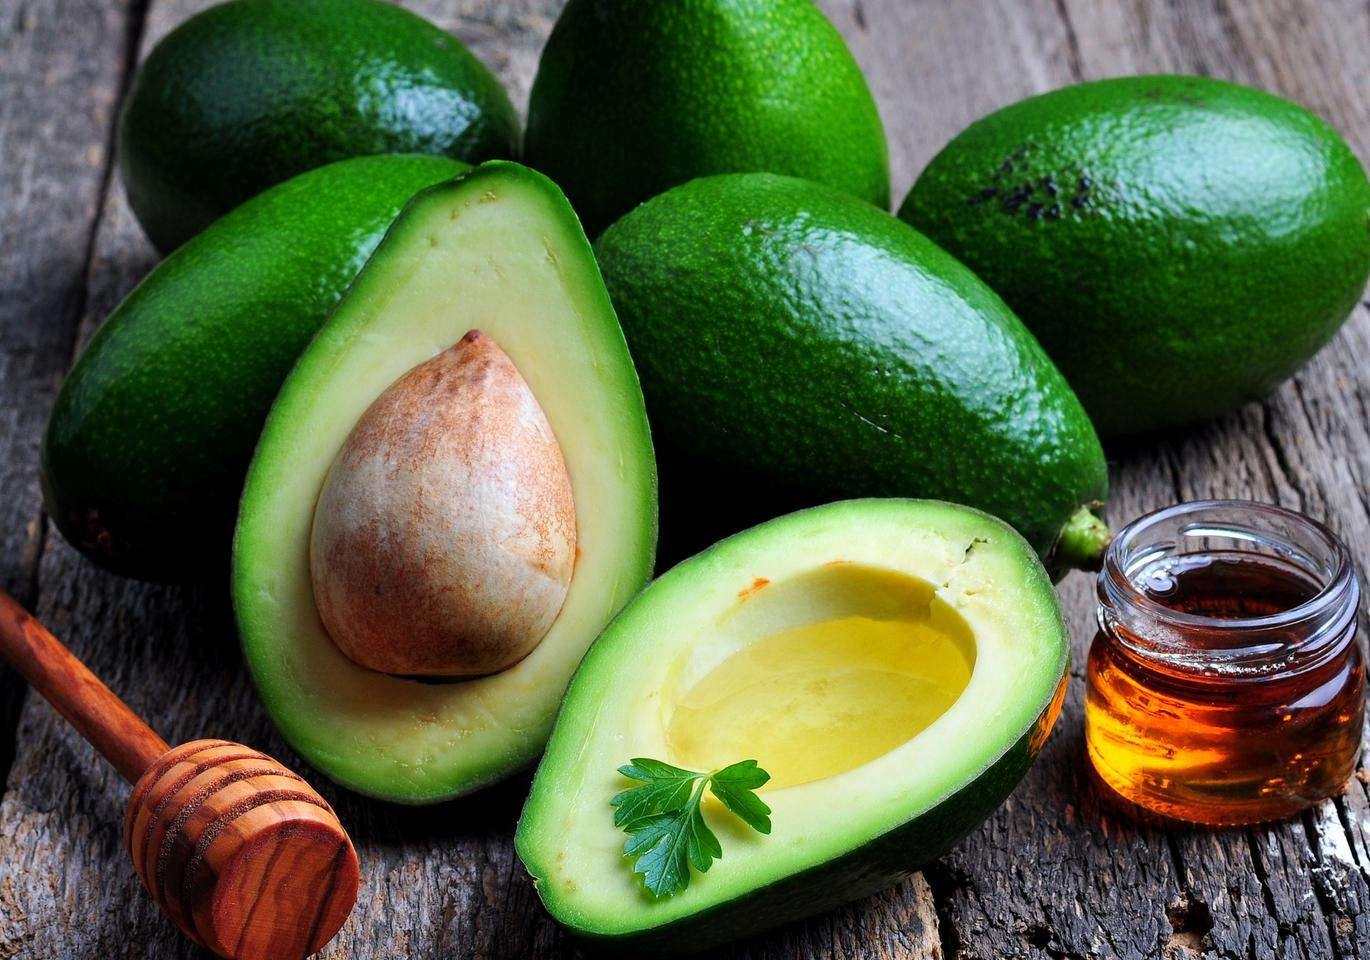 Up to 30 percent of avocados currently go to the waste in the UK due to damage incurred during grading, according to the team behind a new ripeness testing technology that could cut that number